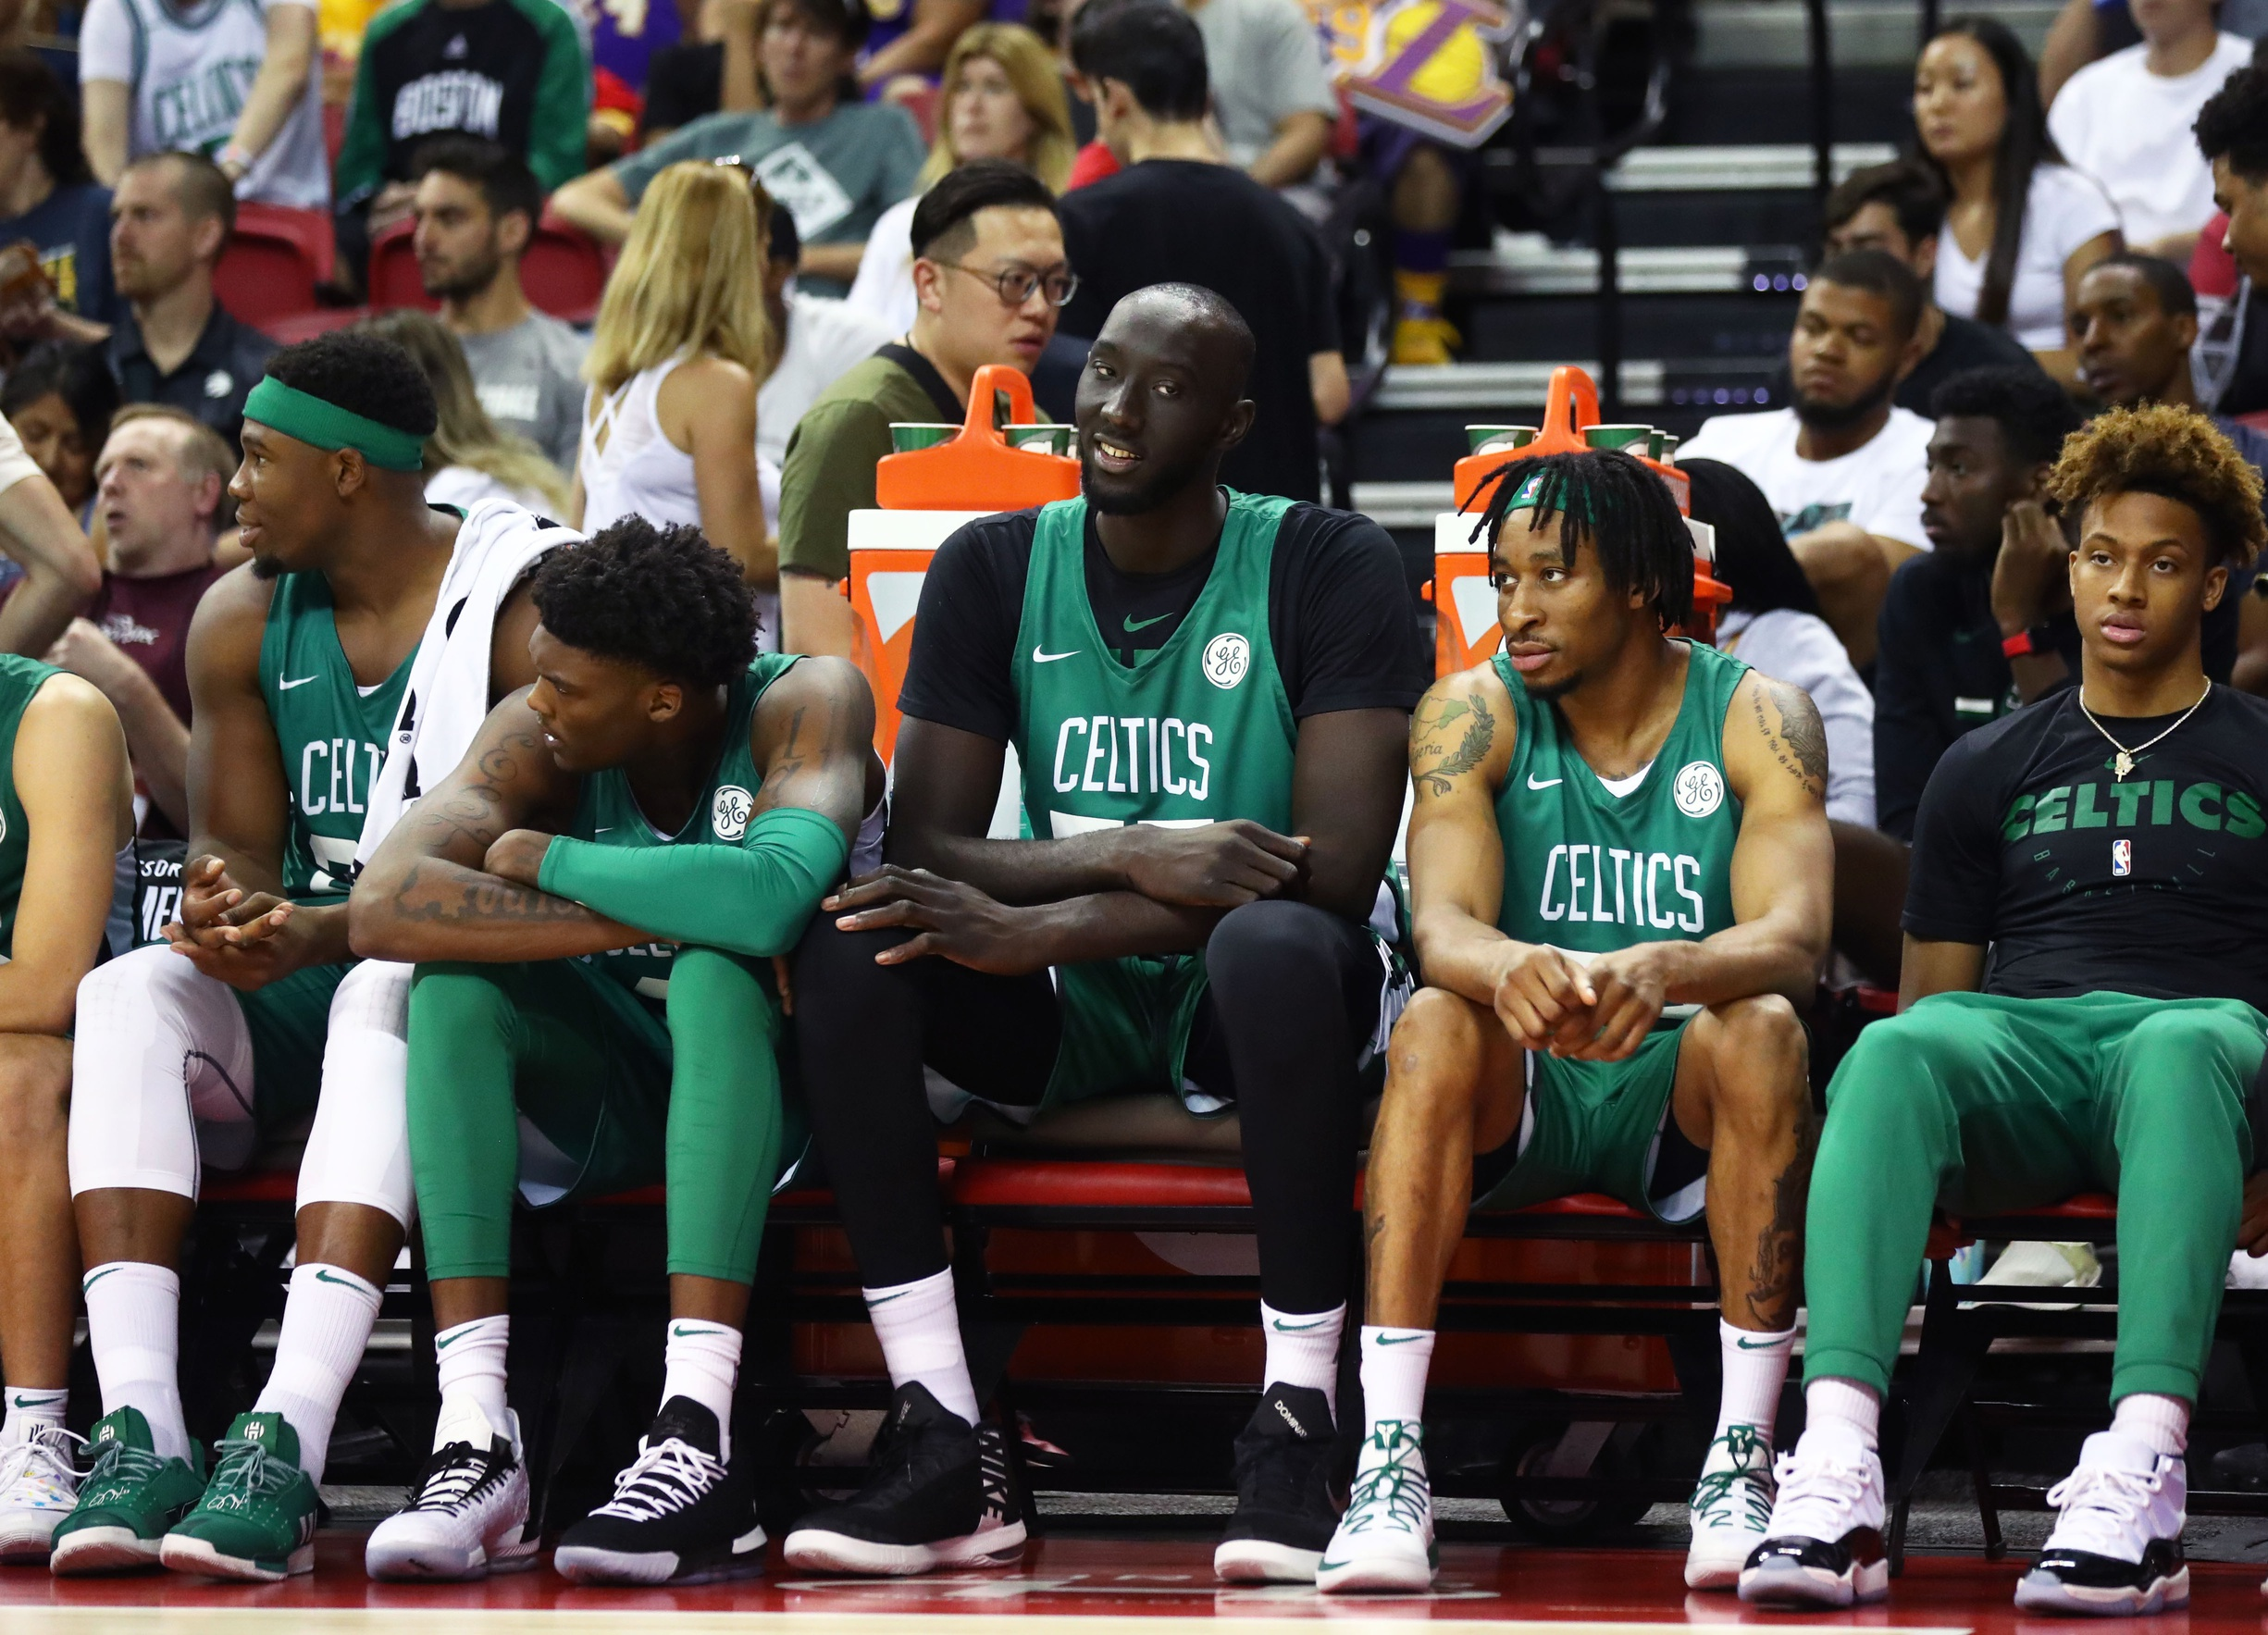 Celtics odds for NBA Eastern Conference playoffs next season